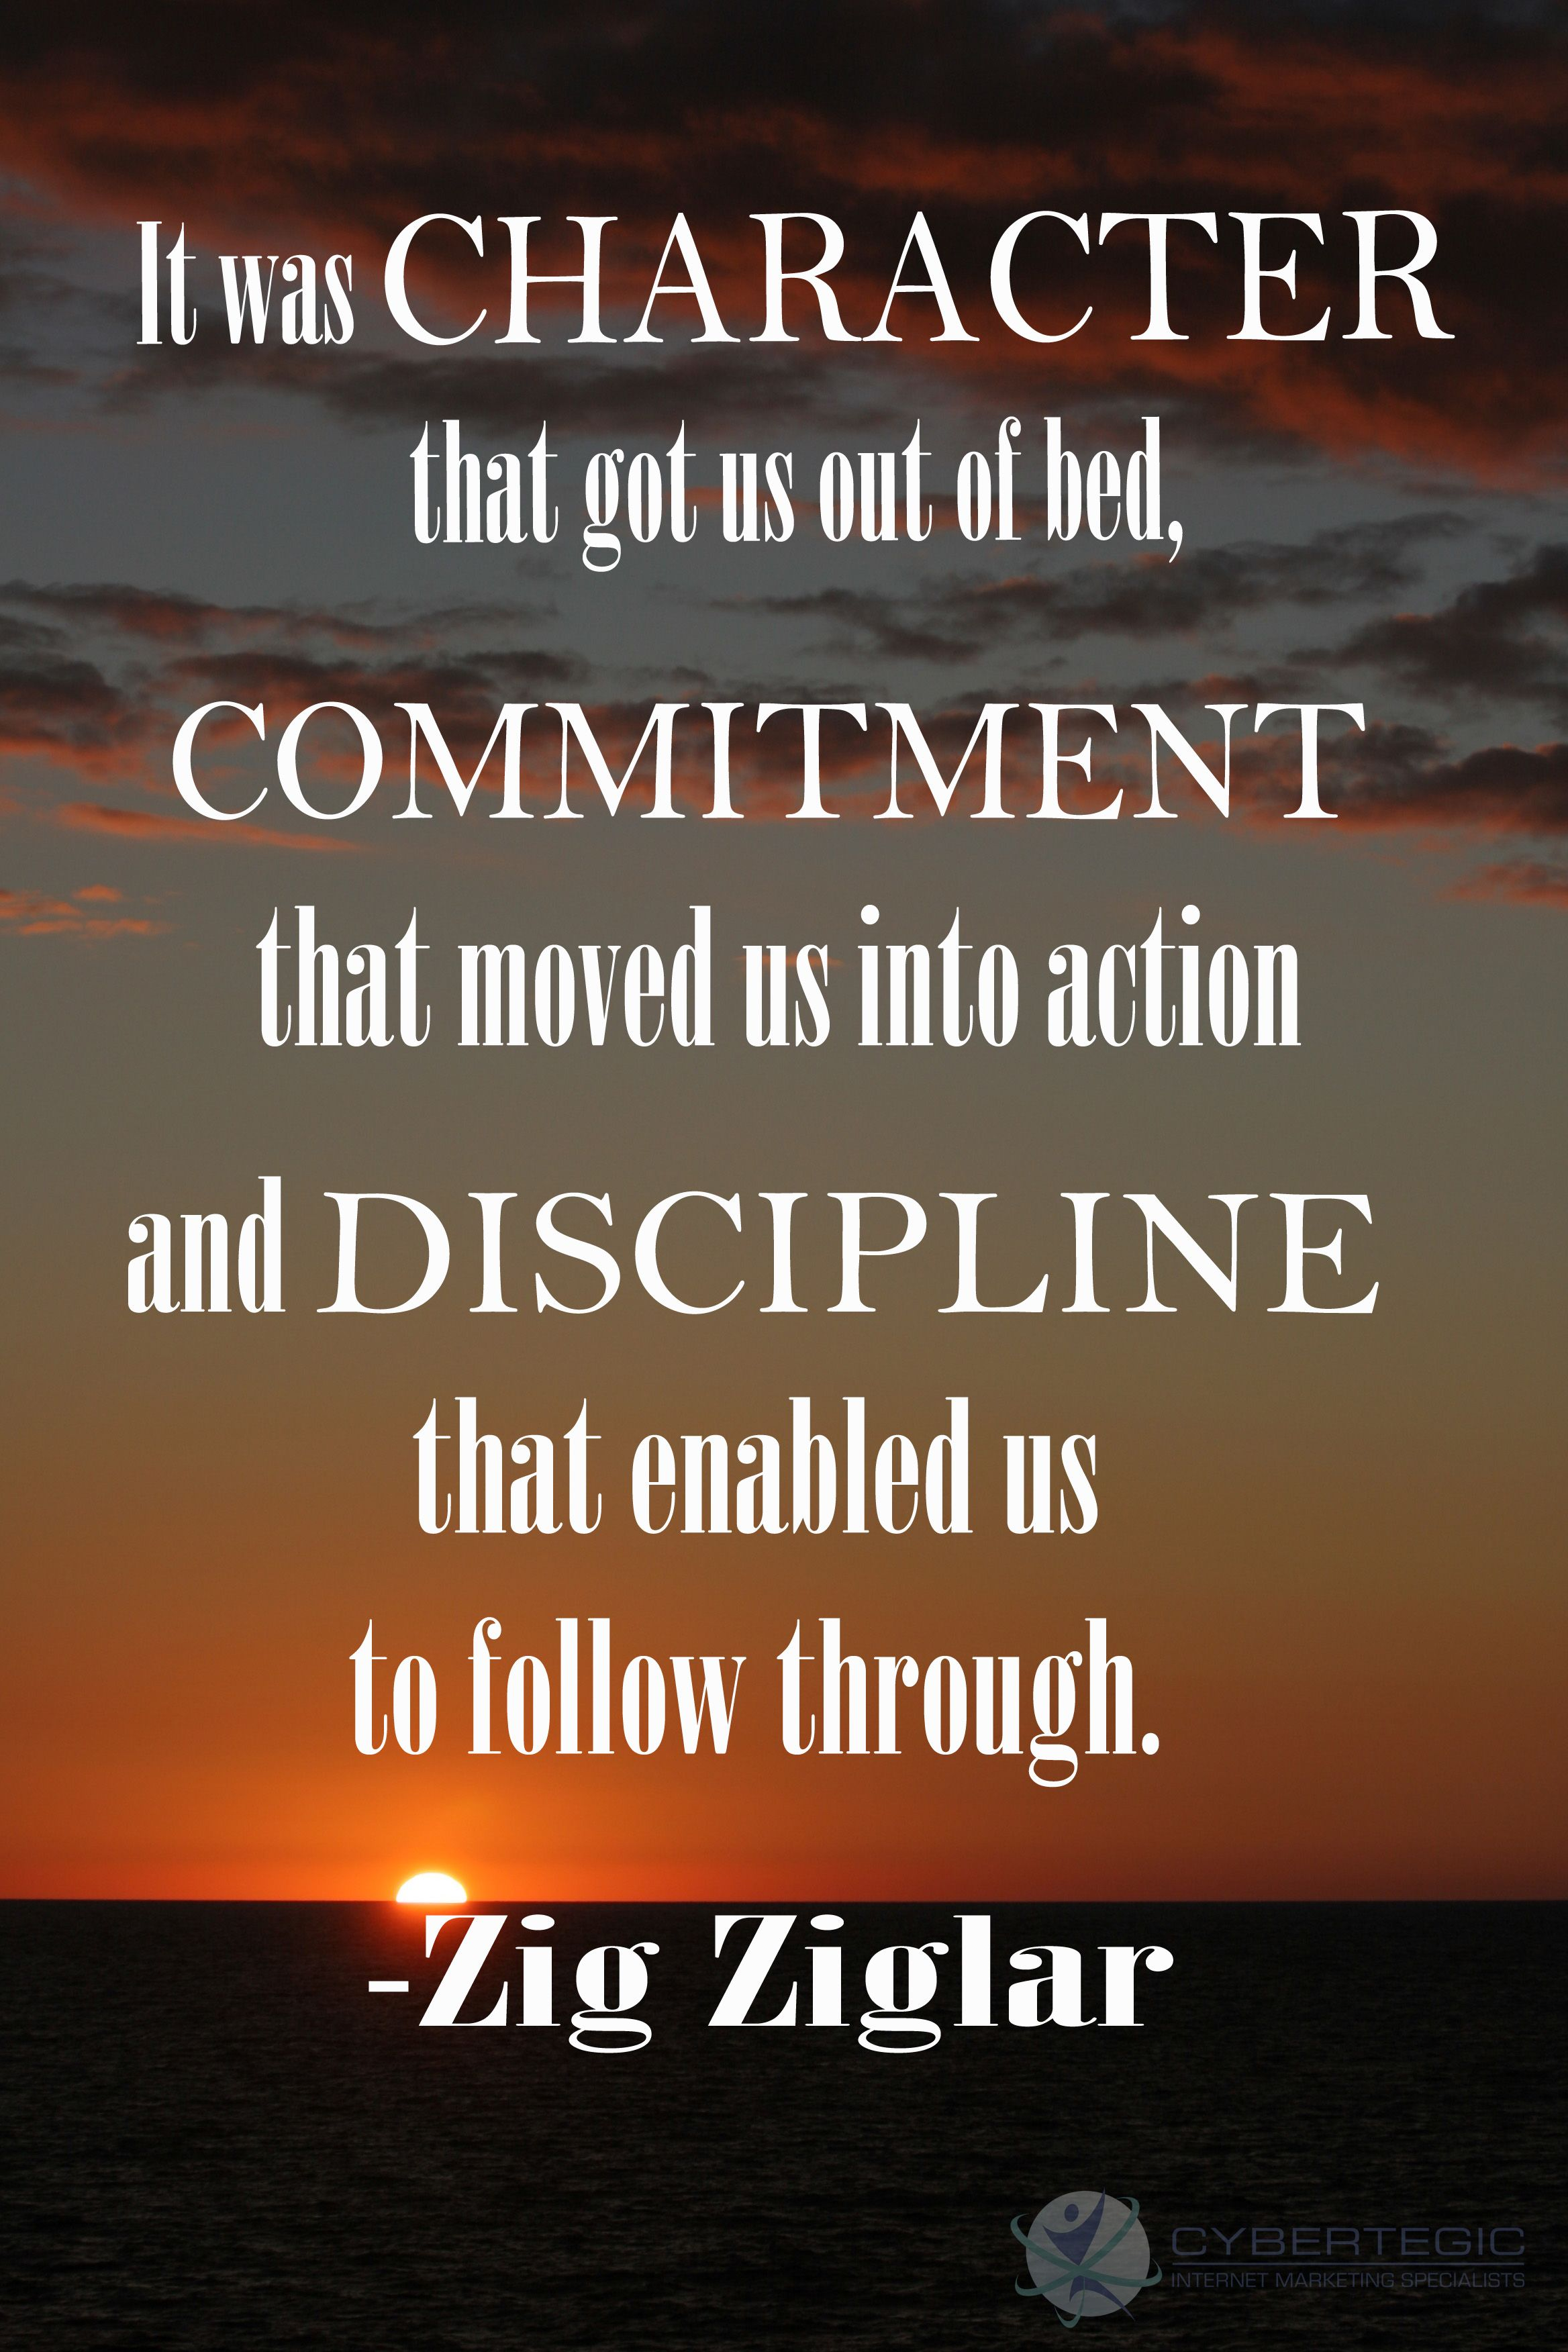 Quotes About Character Zigziglar Discipline Character Quote Commitment Success